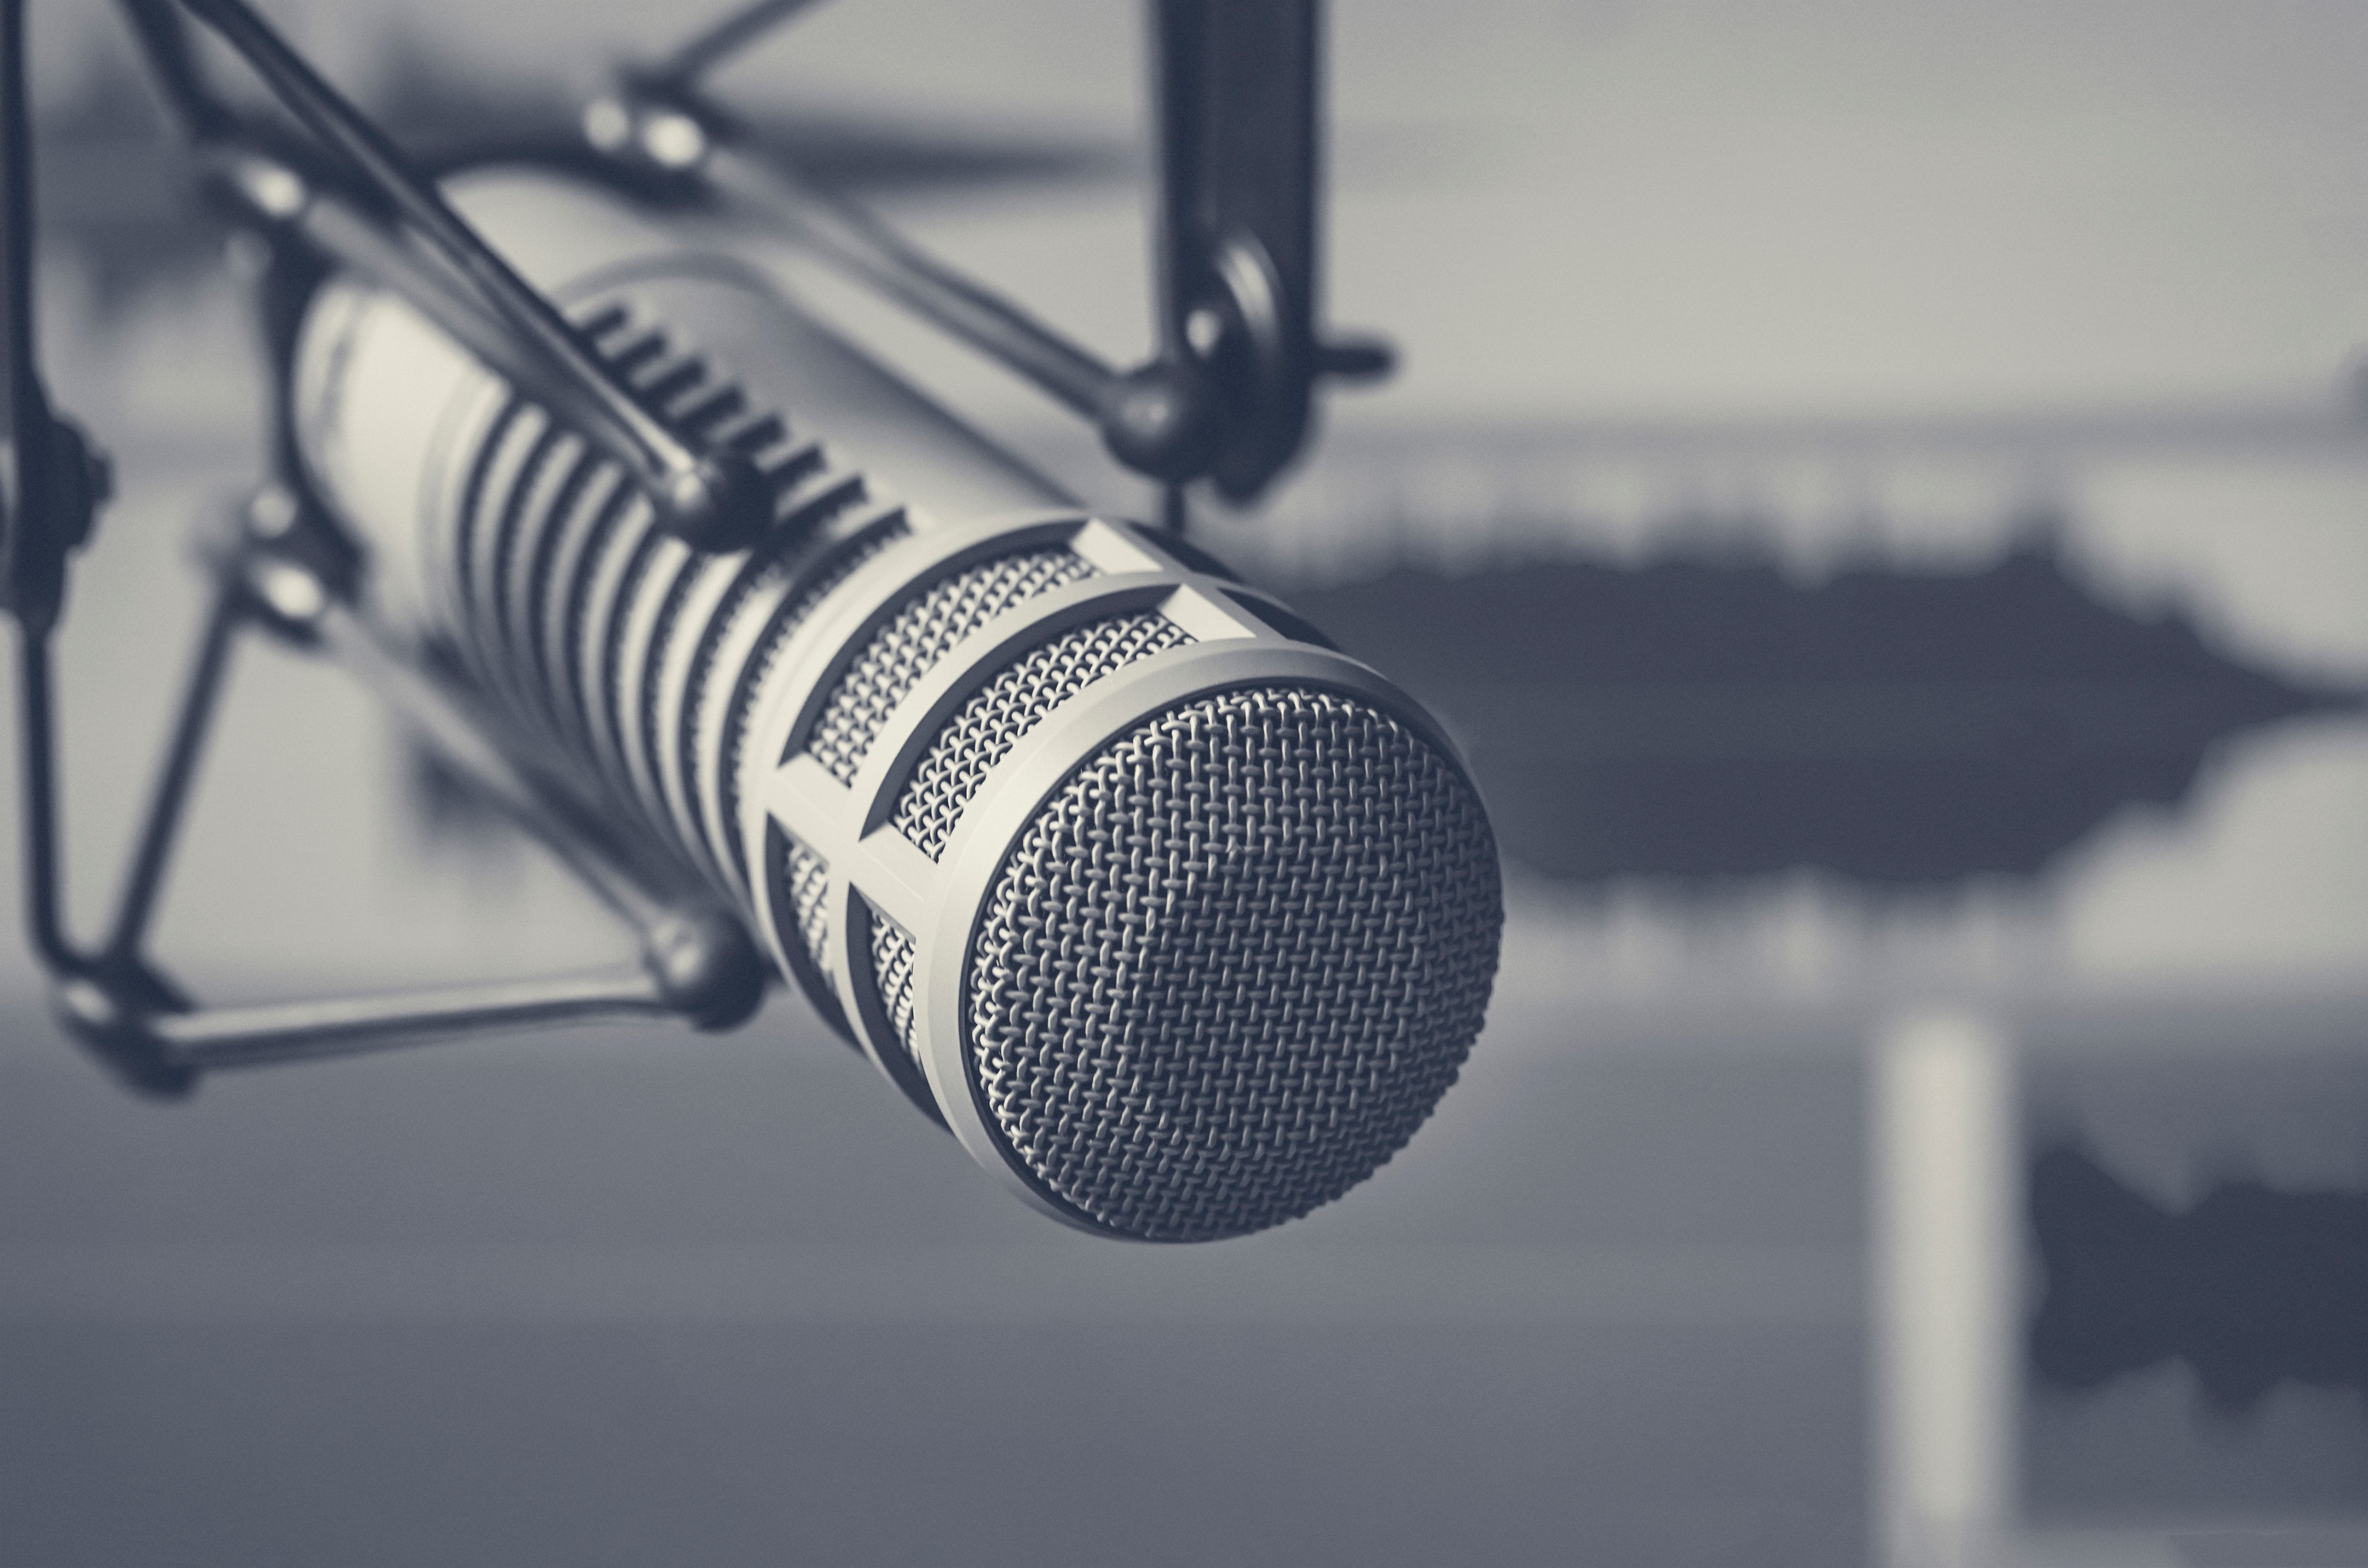 Close up of a professional microphone and sound wave form in the background.